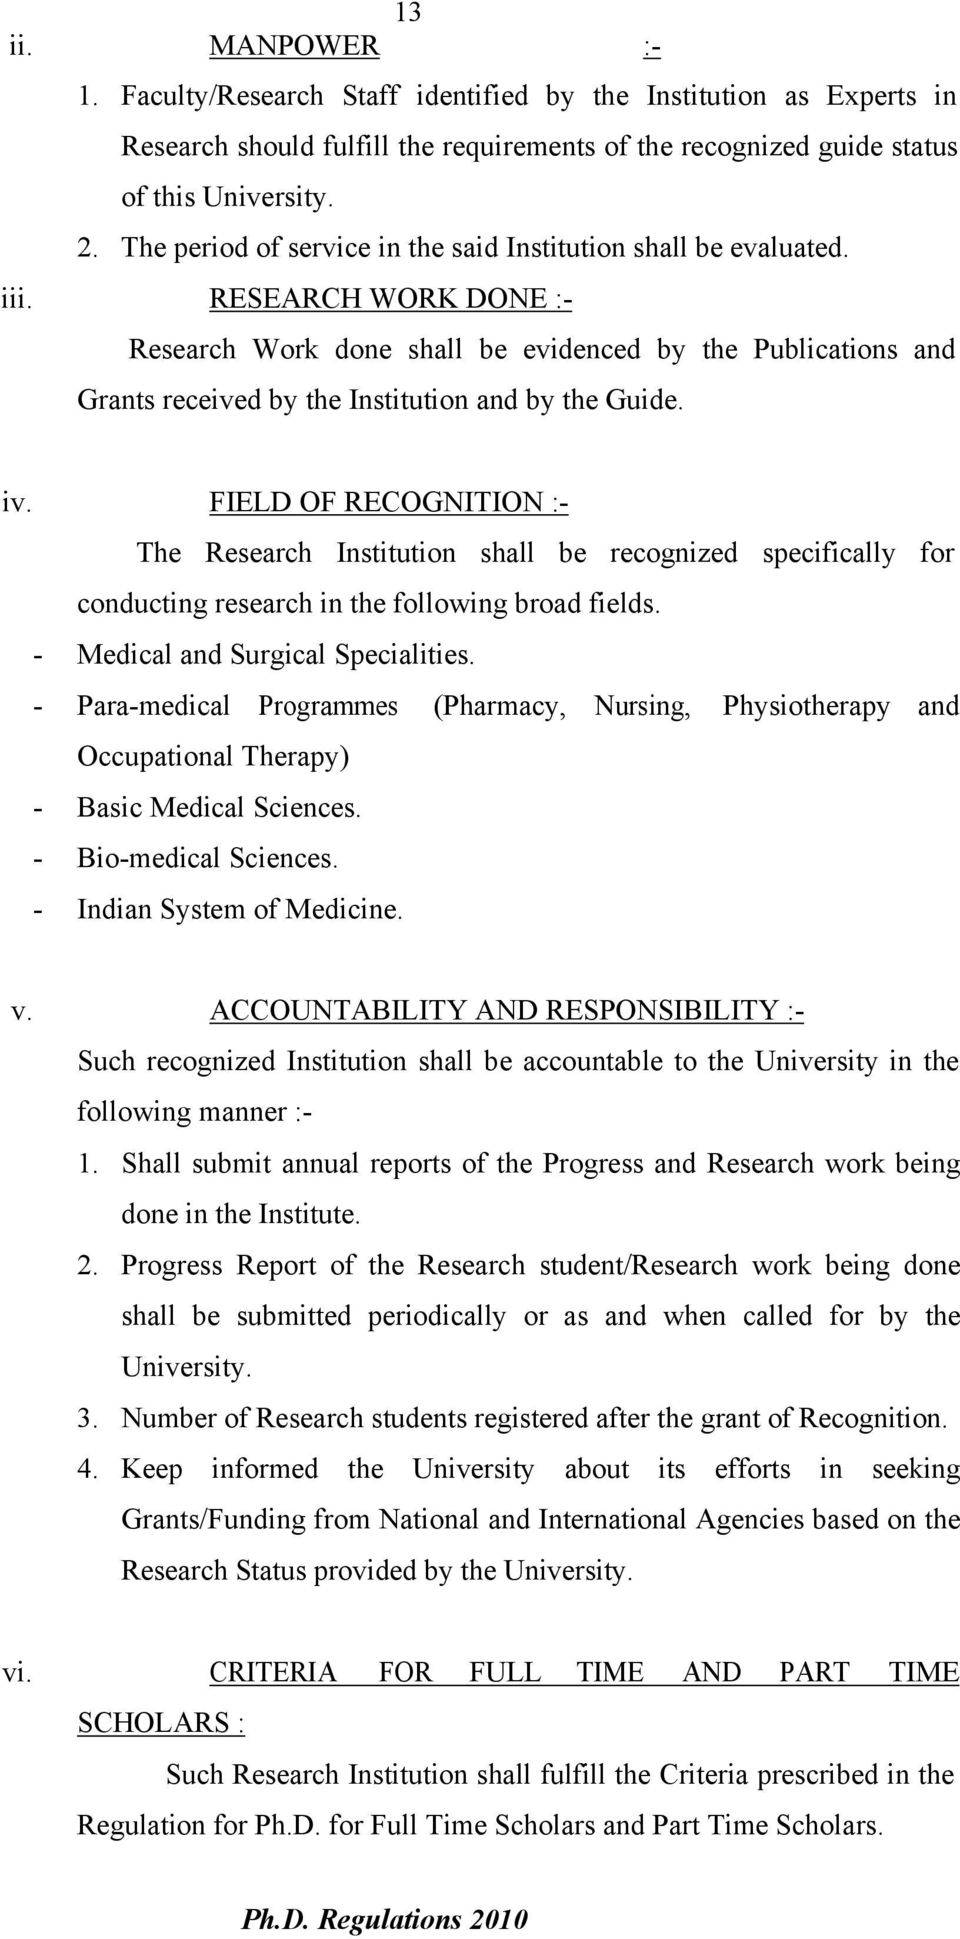 RESEARCH WORK DONE :- Research Work done shall be evidenced by the Publications and Grants received by the Institution and by the Guide. iv.